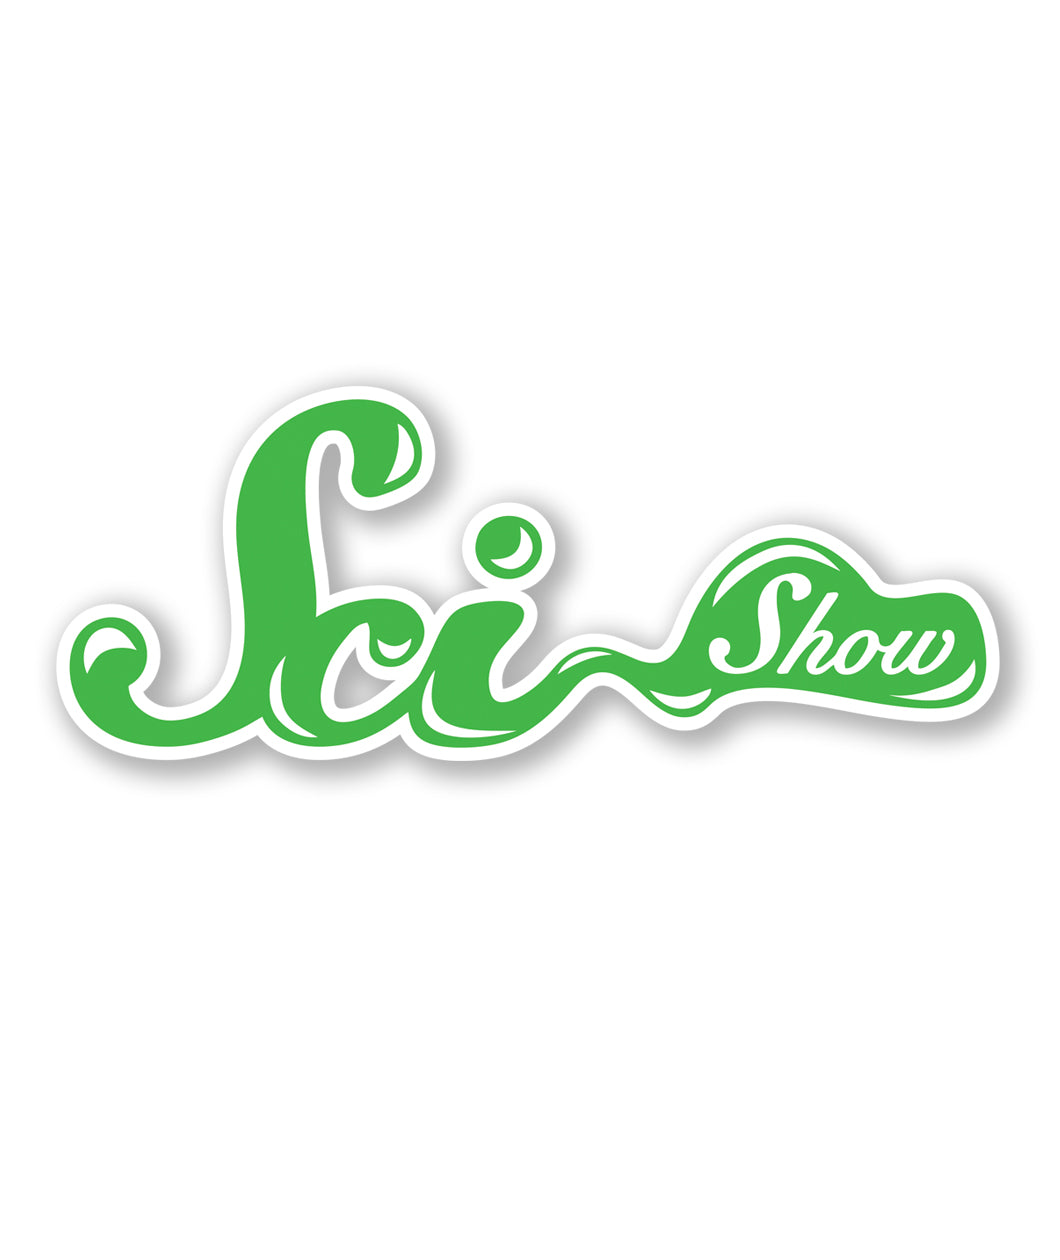 SciShow Vinyl Decal